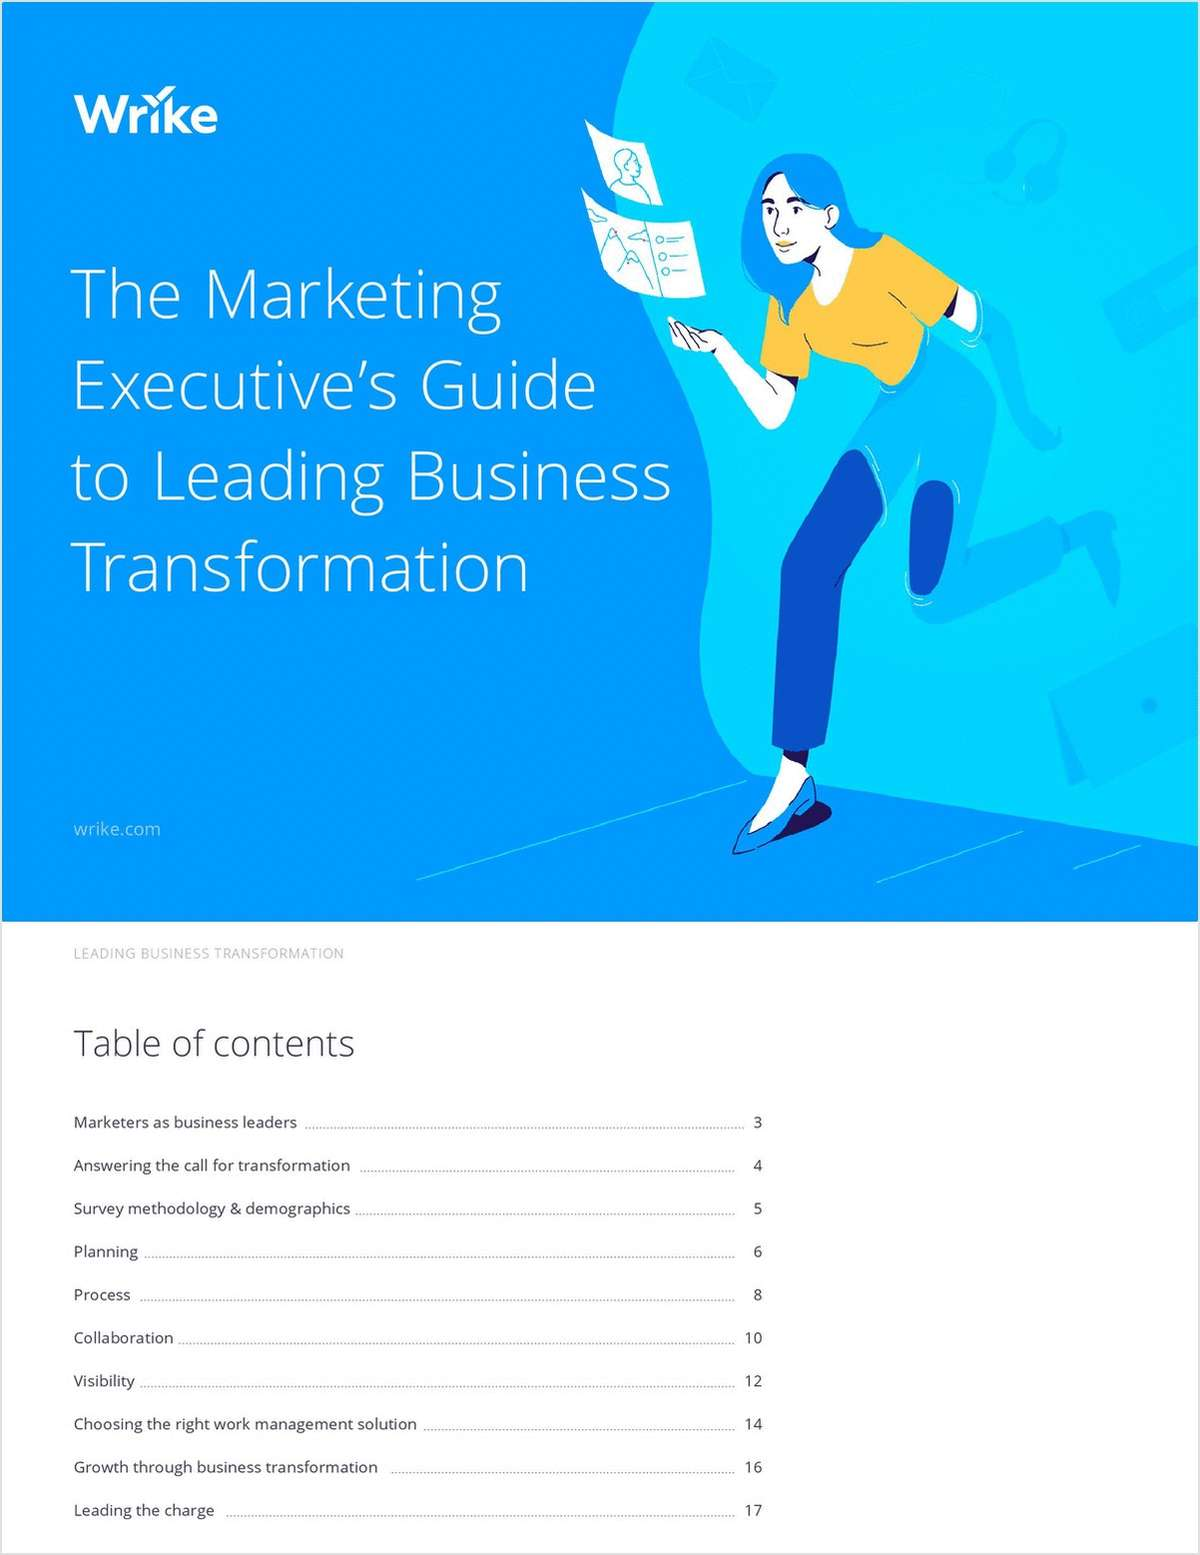 The Marketing Executive's Guide to Leading Business Transformation